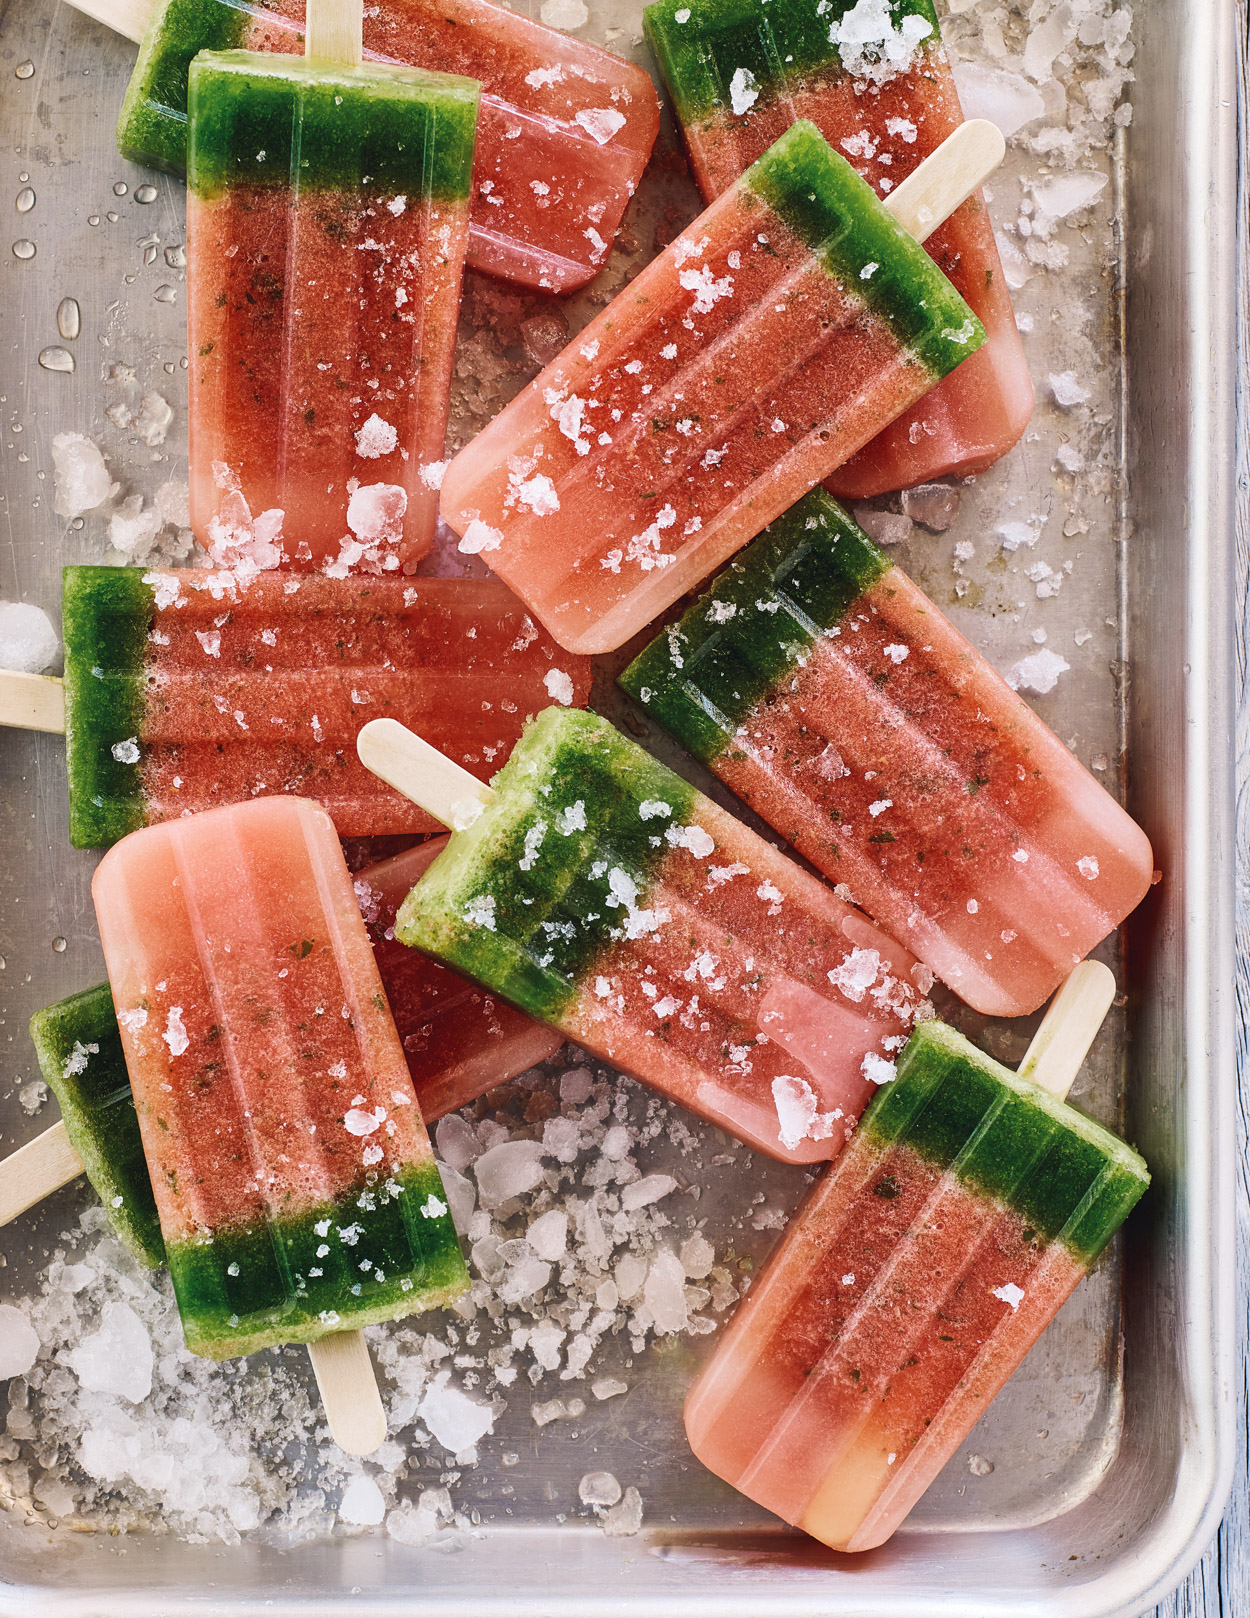 Los Angeles Food photographer - Cooking in Season Cookbook Watermelon popsicle by Ray Kachatorian